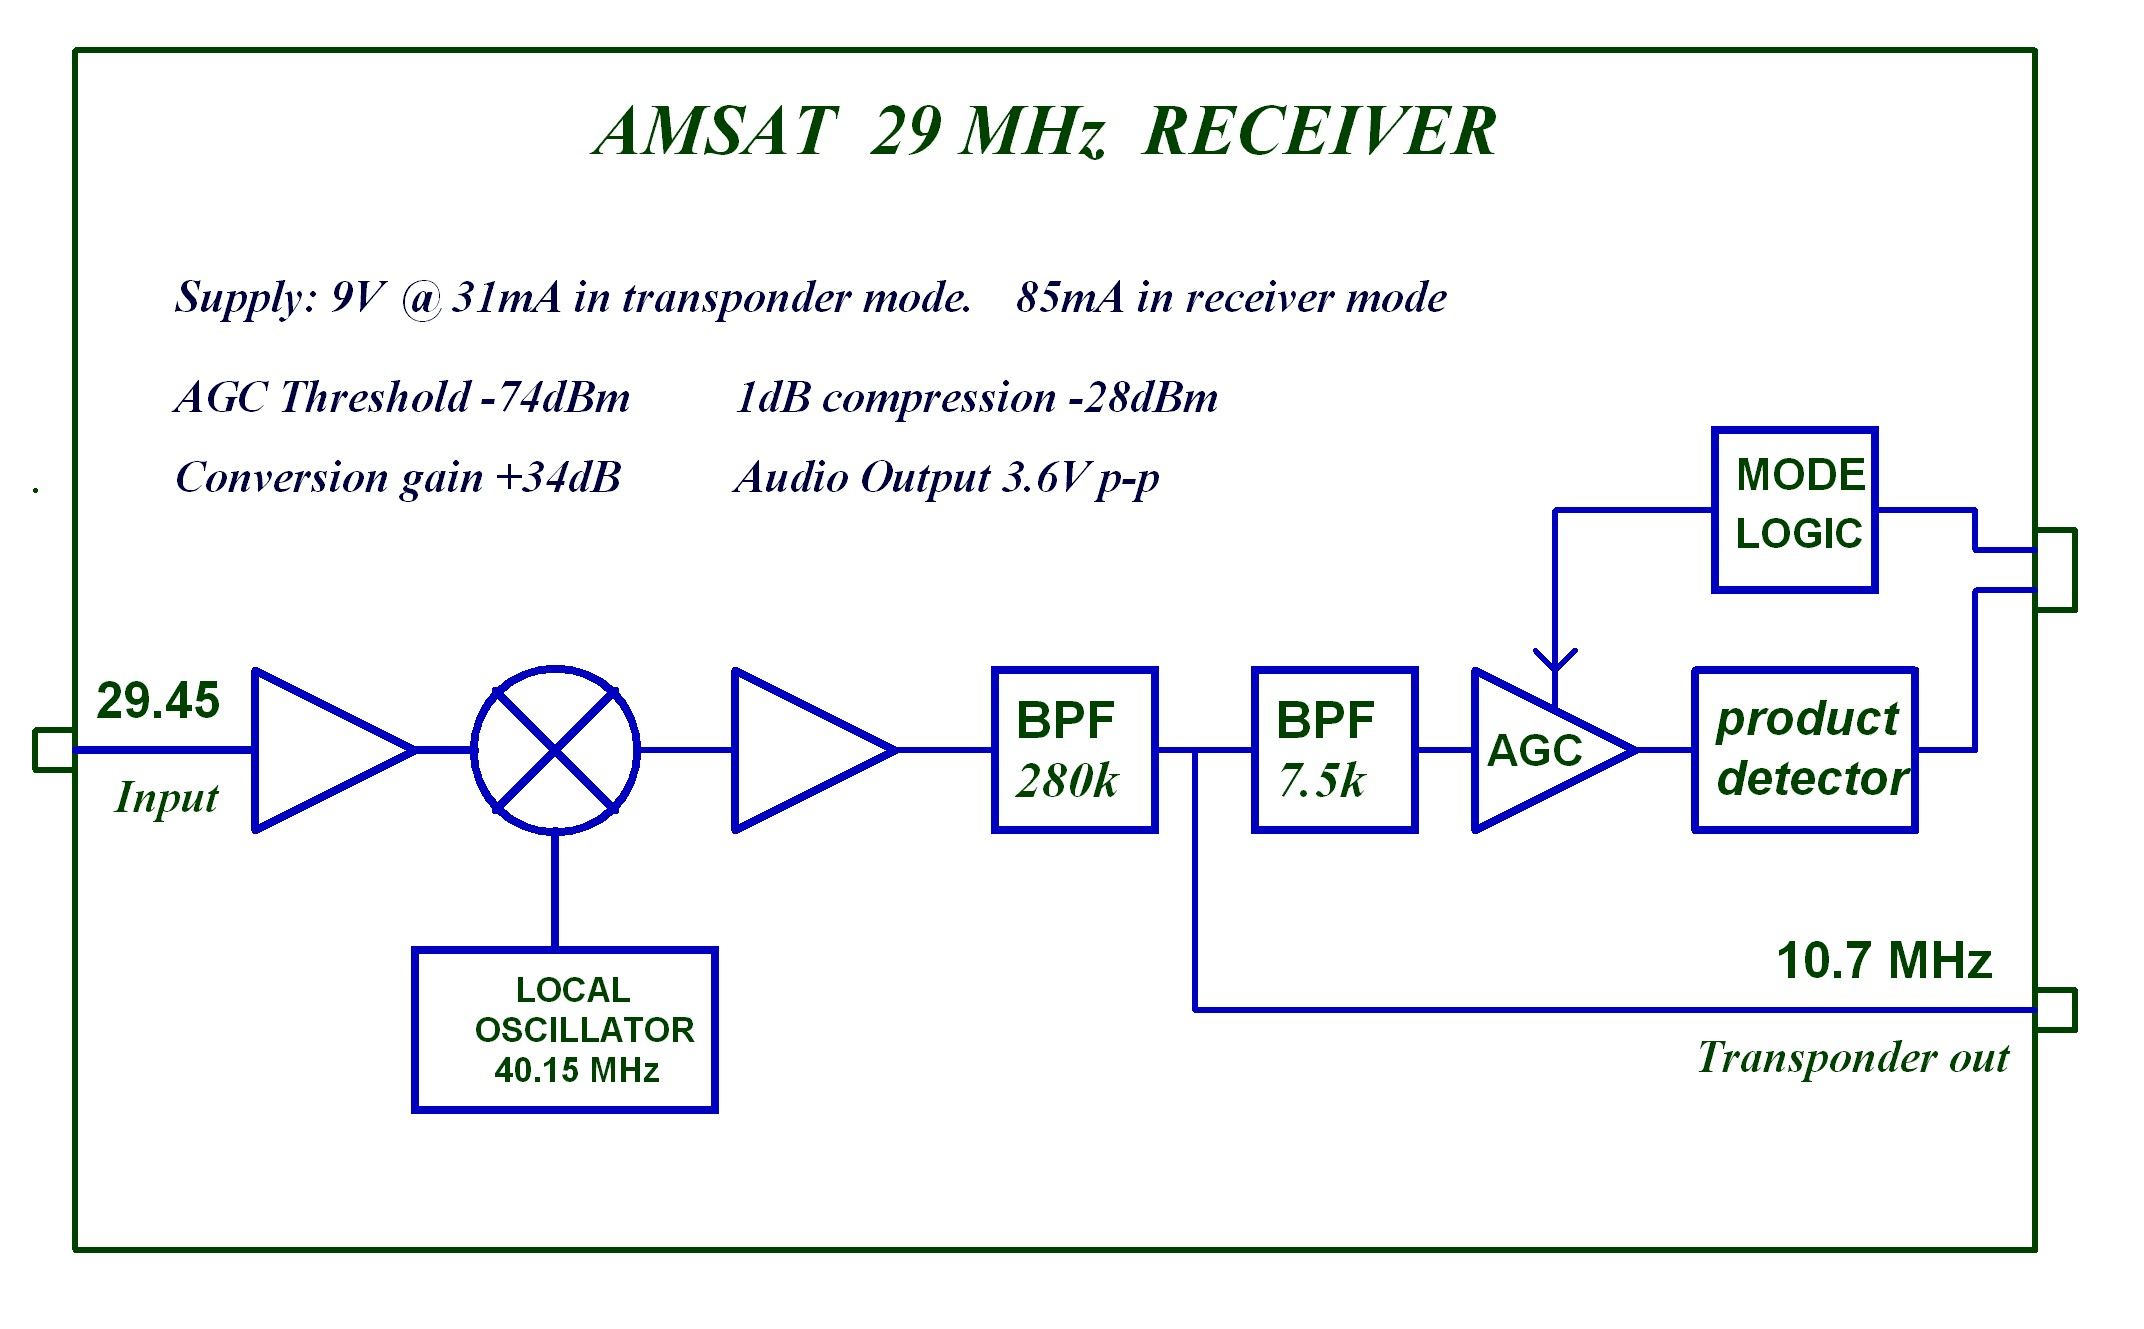 mass airflow receiver circuit brain stem diagram labeled g0mrf 29 45 mhz project amsat uk